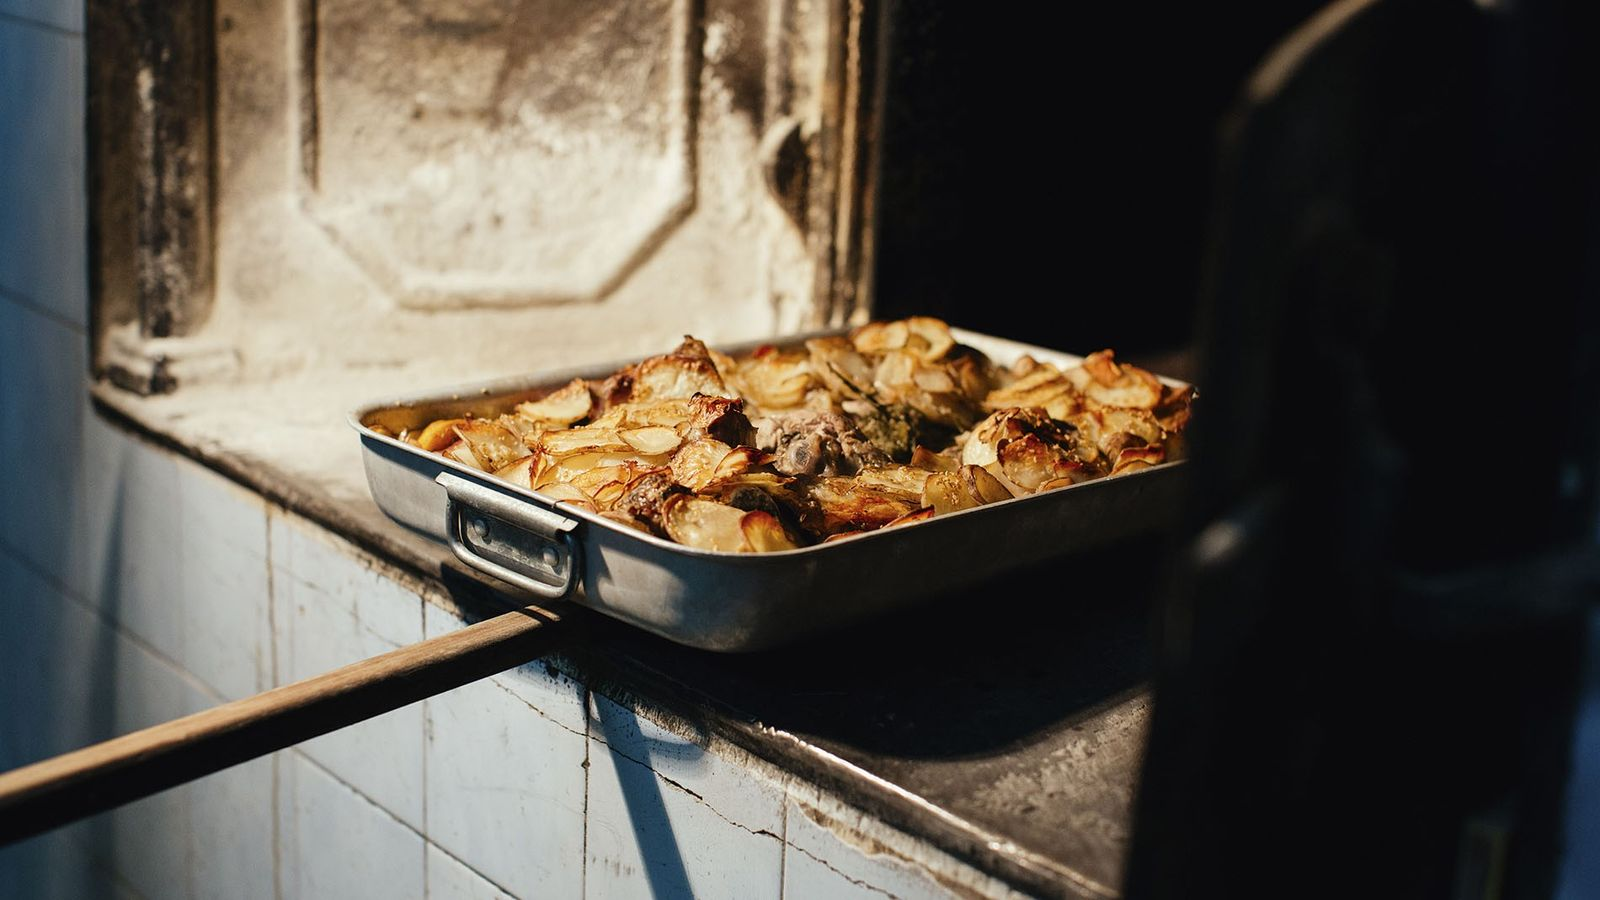 The family's lamb dish is cooked in the bakery oven